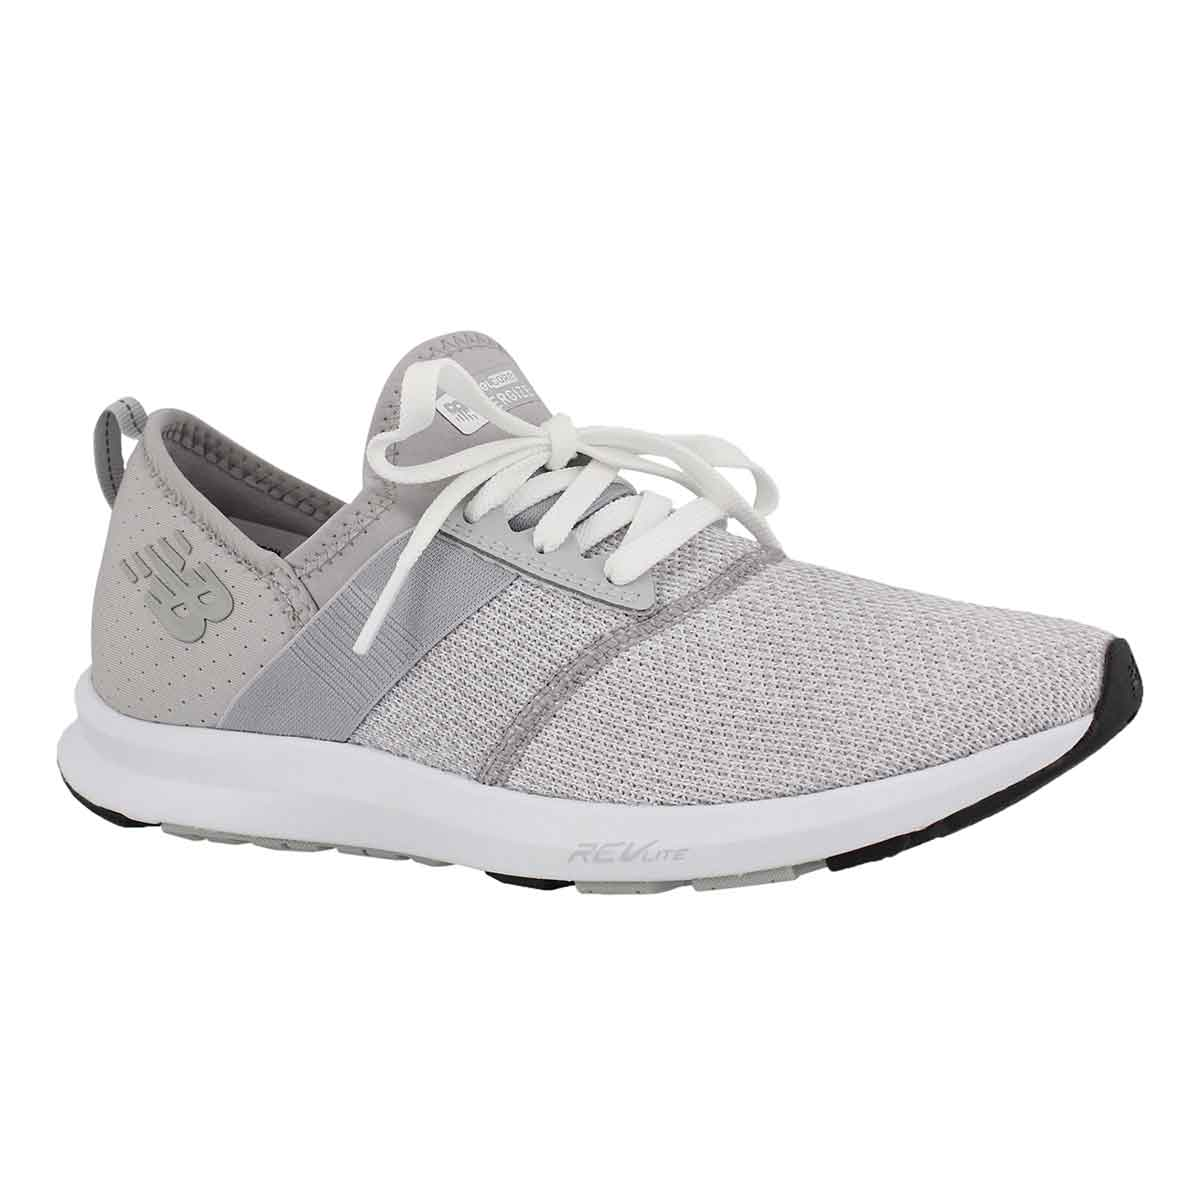 Women's FUELCORE overcast/white lace up sneakers